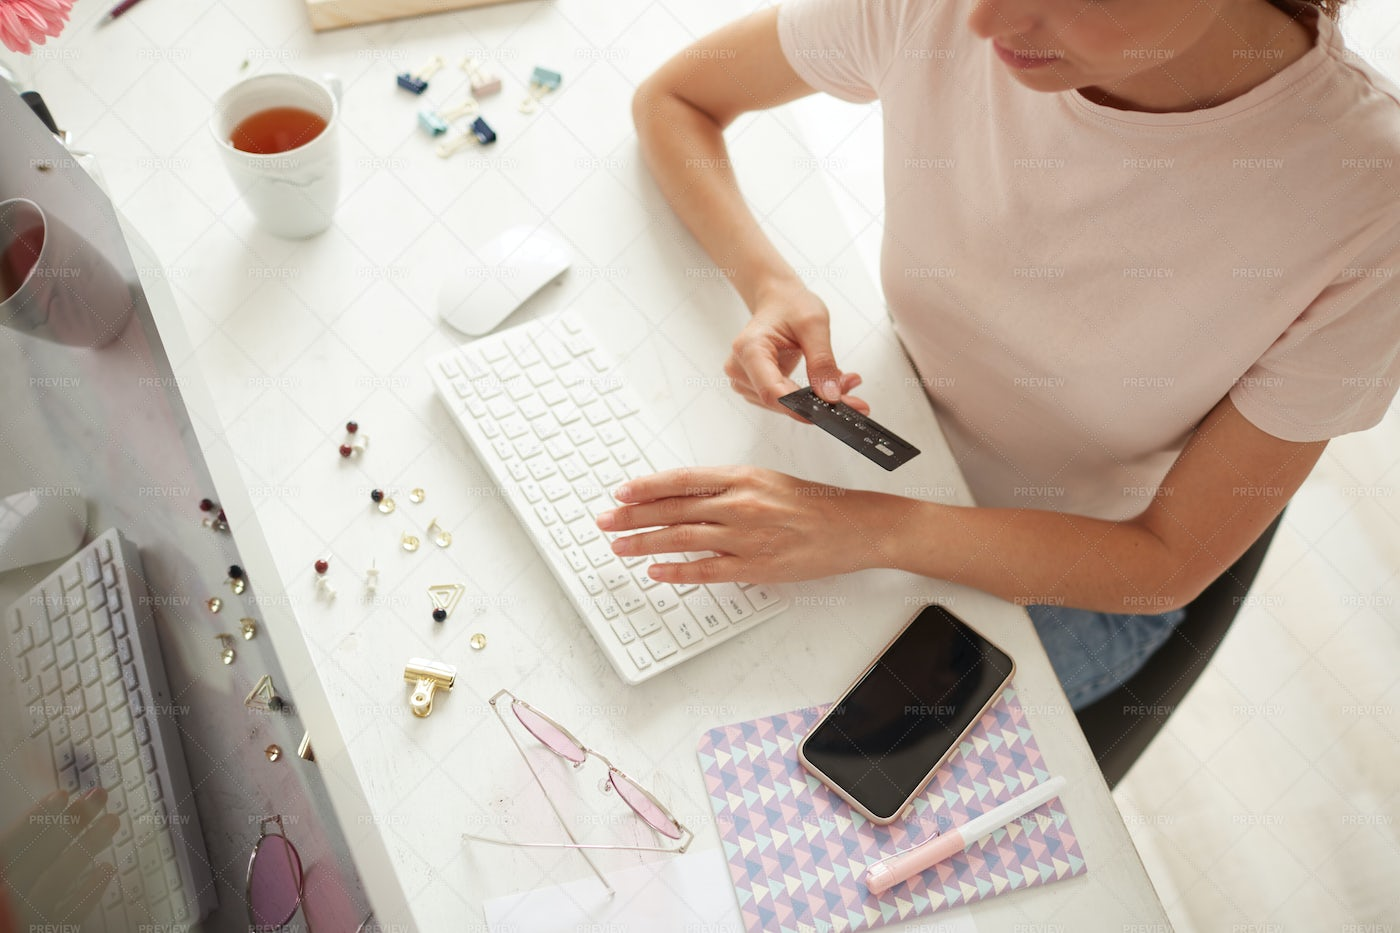 Checking Order Before Online...: Stock Photos